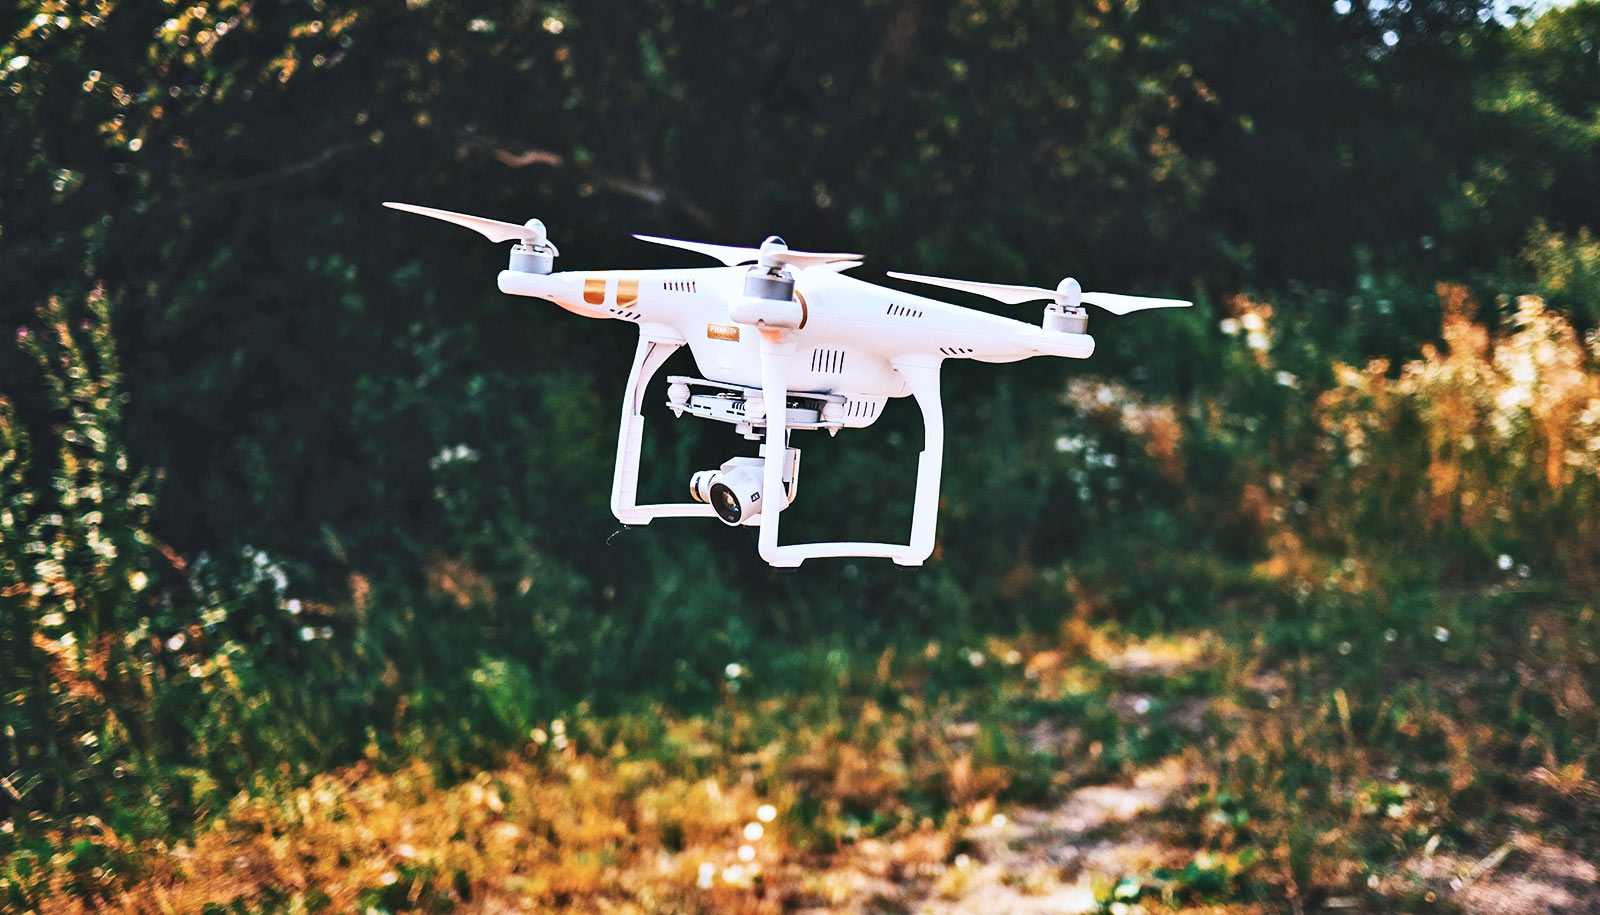 Drone delivery could make your medications cheaper - Futurity